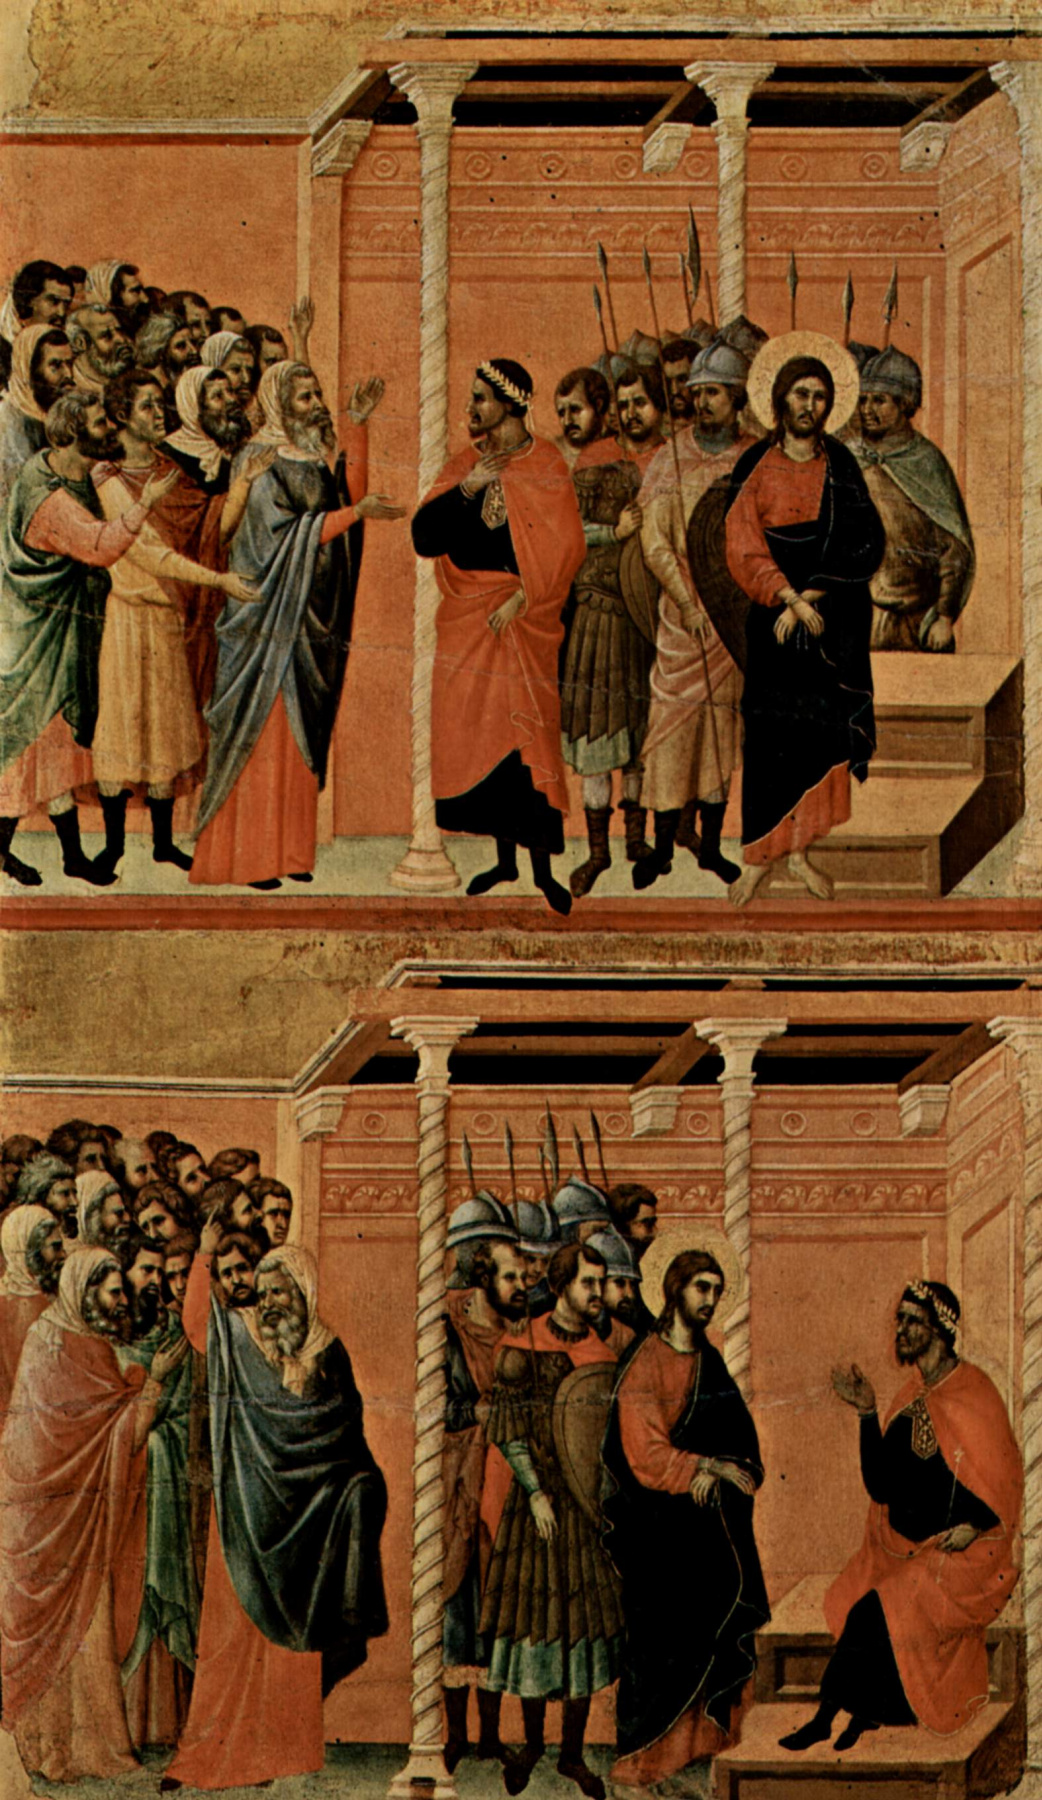 Duccio di Buoninsegna. Maesta, altar of Siena Cathedral, reverse side, Register with scenes of the passion of Christ: Christ Charges the Pharisees